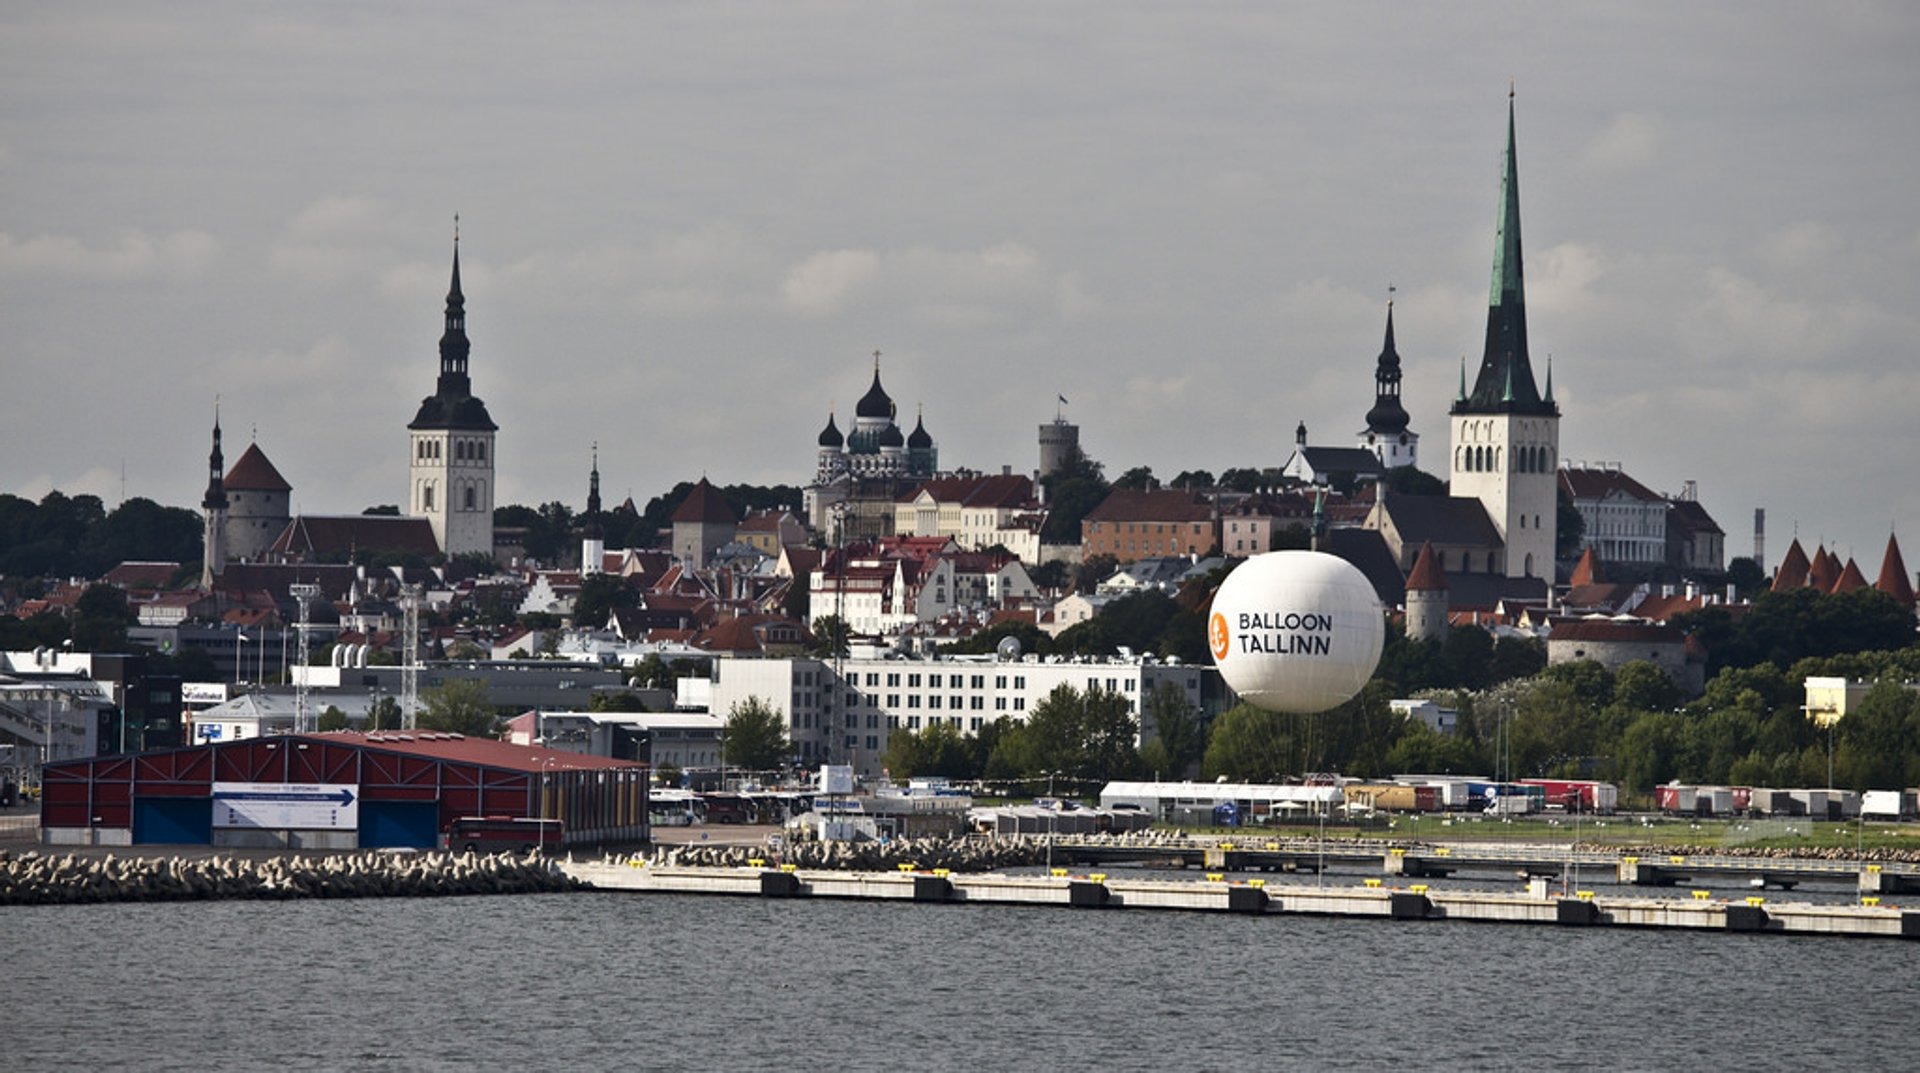 Balloon Tallinn in Estonia 2019 - Best Time